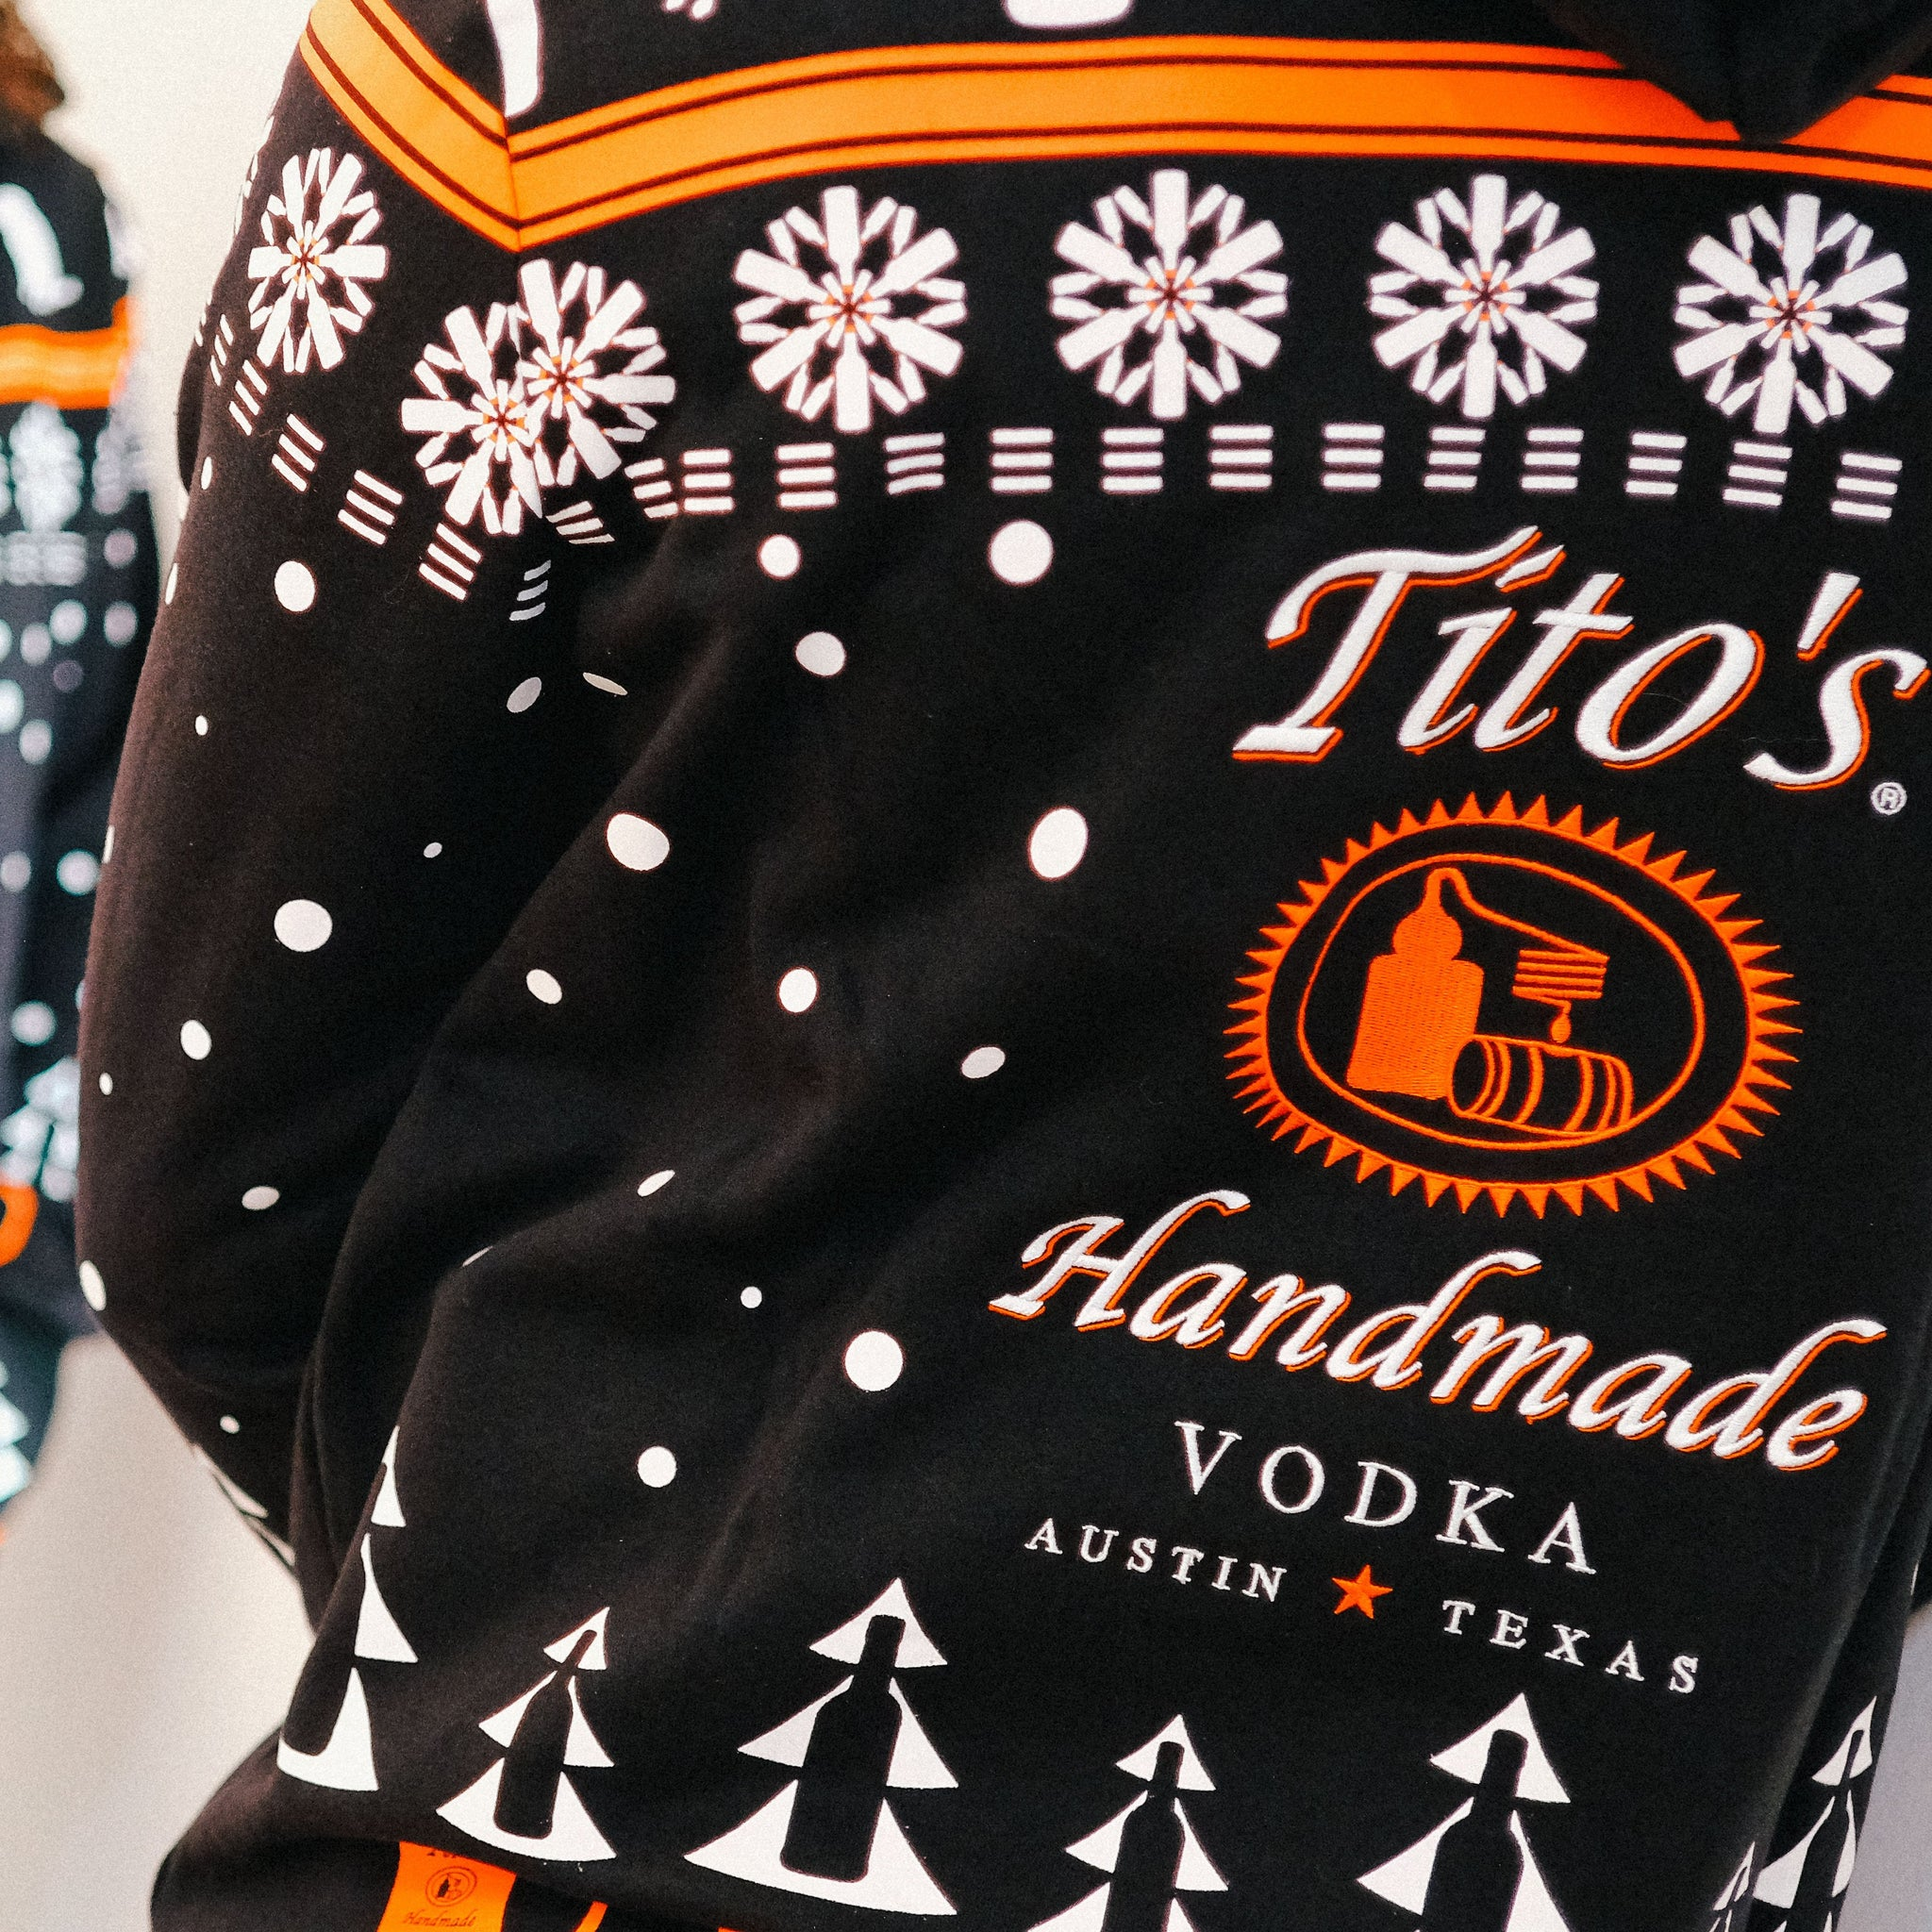 Back view of hooded sweatshirt with Tito's Handmade Vodka logo and holiday-inspired designs of snowflakes, dogs, trees, bottles, and copper mule mugs